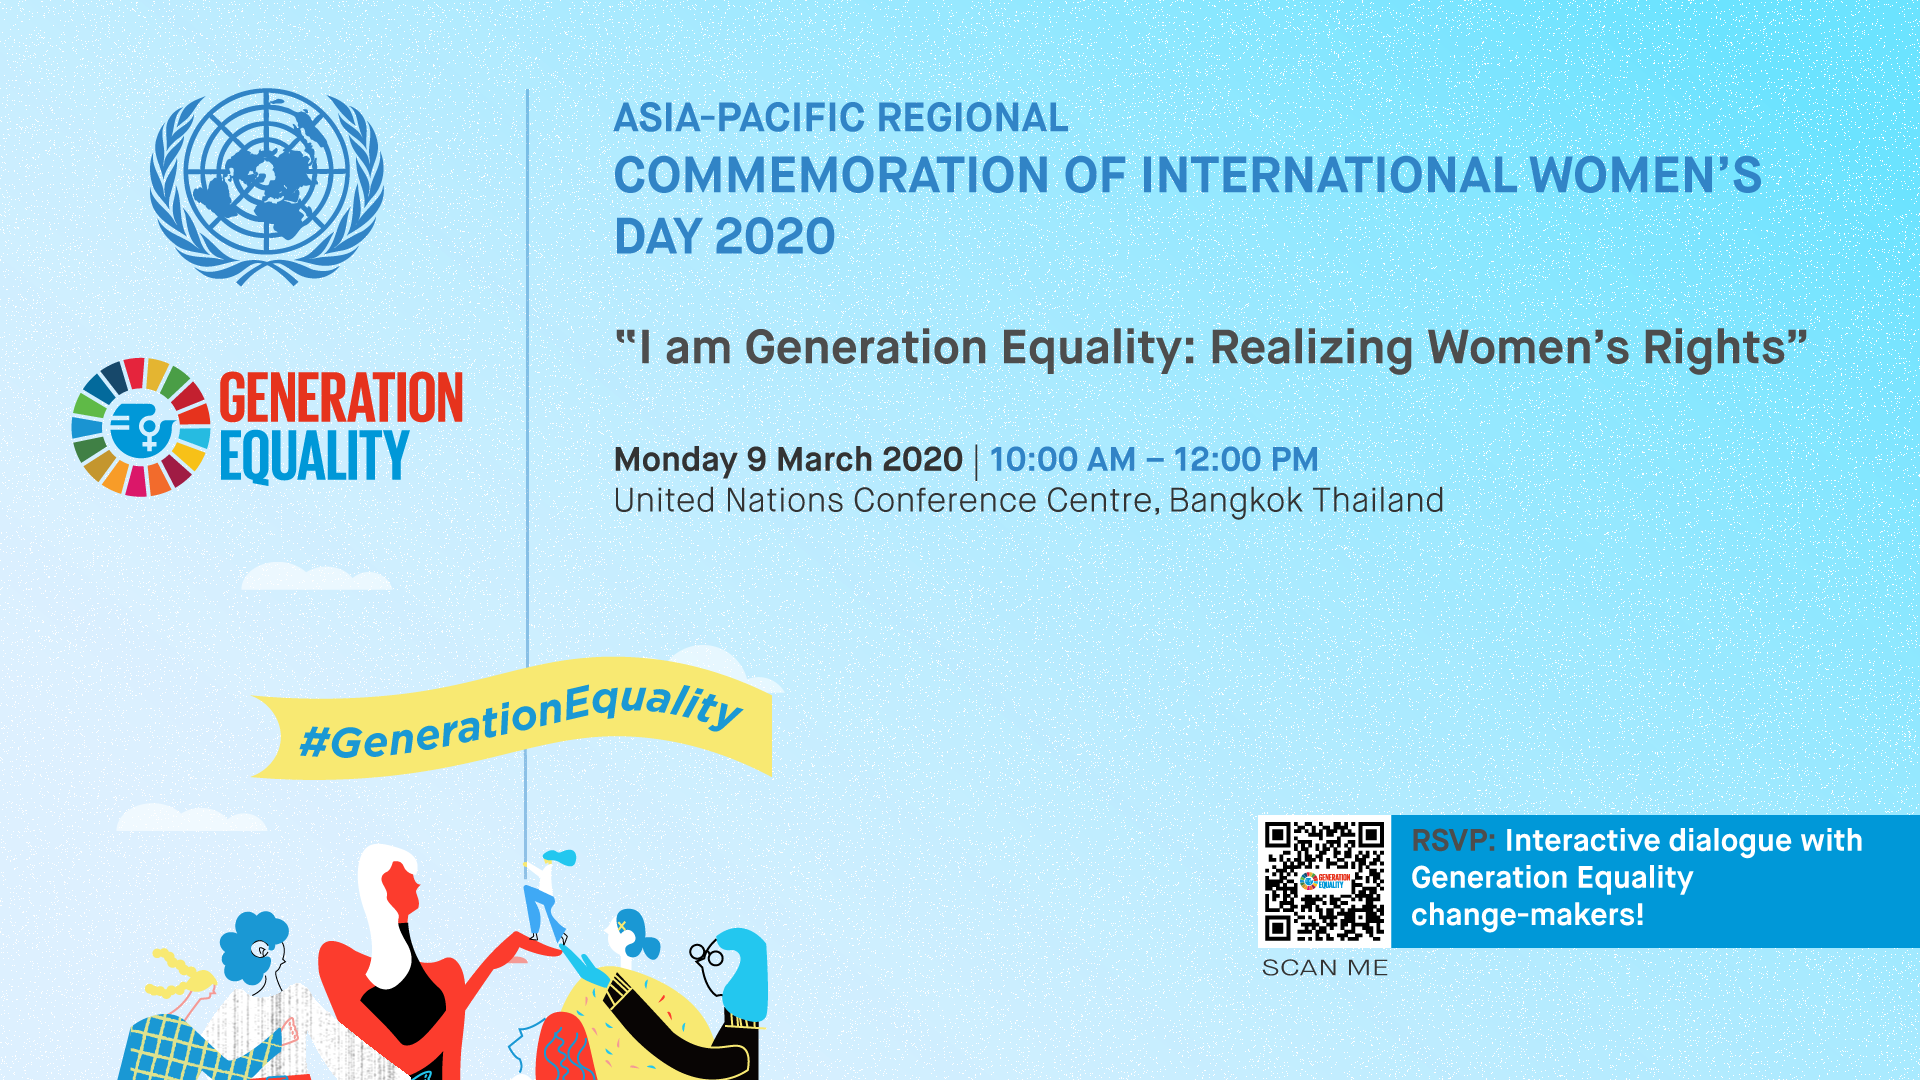 Young change-makers take the lead on realizing women's rights in Asia and the Pacific